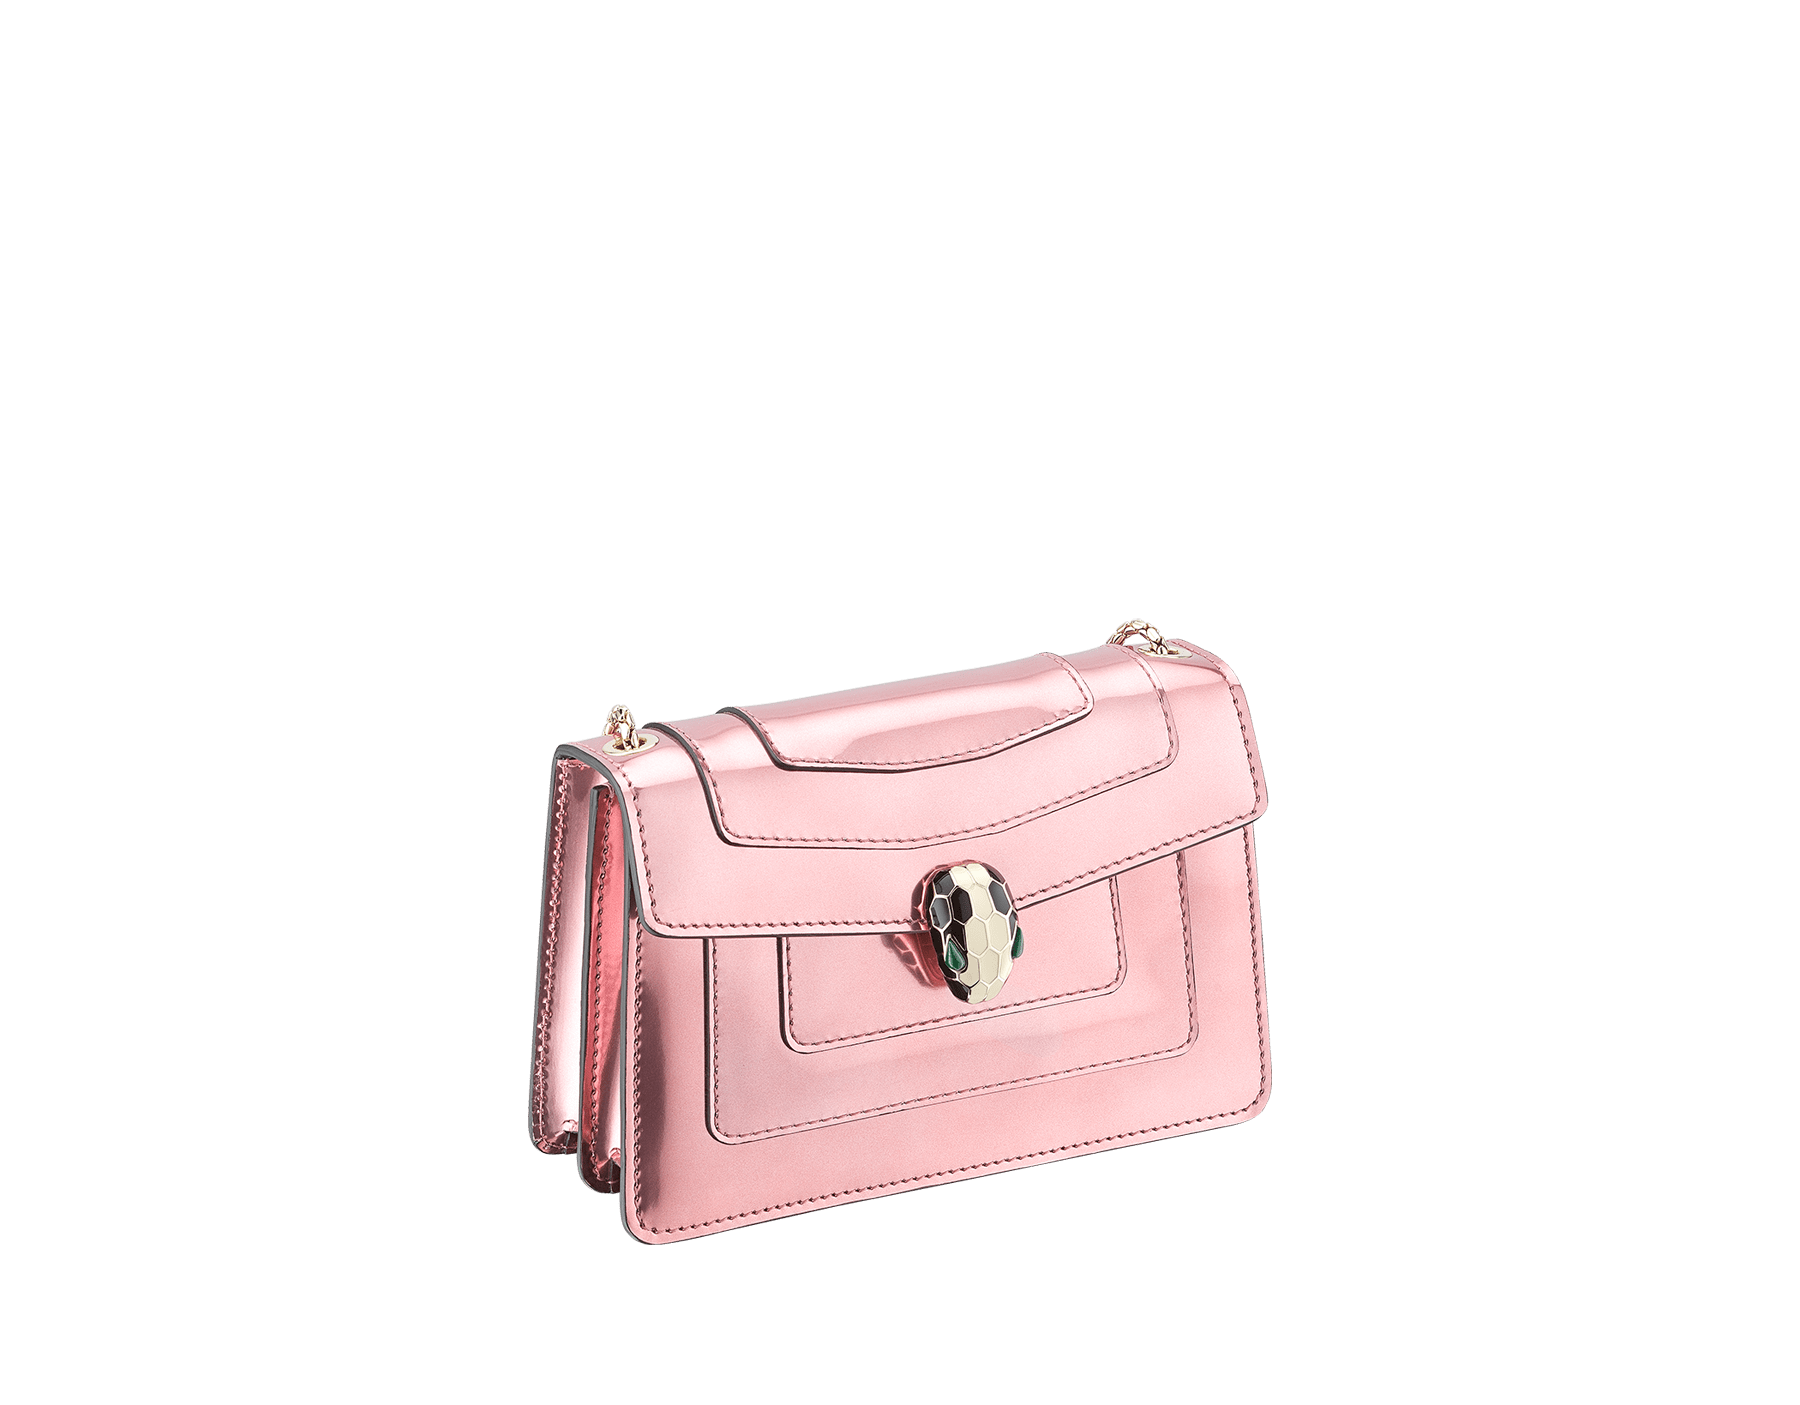 Serpenti Forever mini crossbody bag in sunset rose brushed metallic calf leather. Brass light gold-plated snake head closure in black and white enamel, with green malachite eyes. 288052 image 2